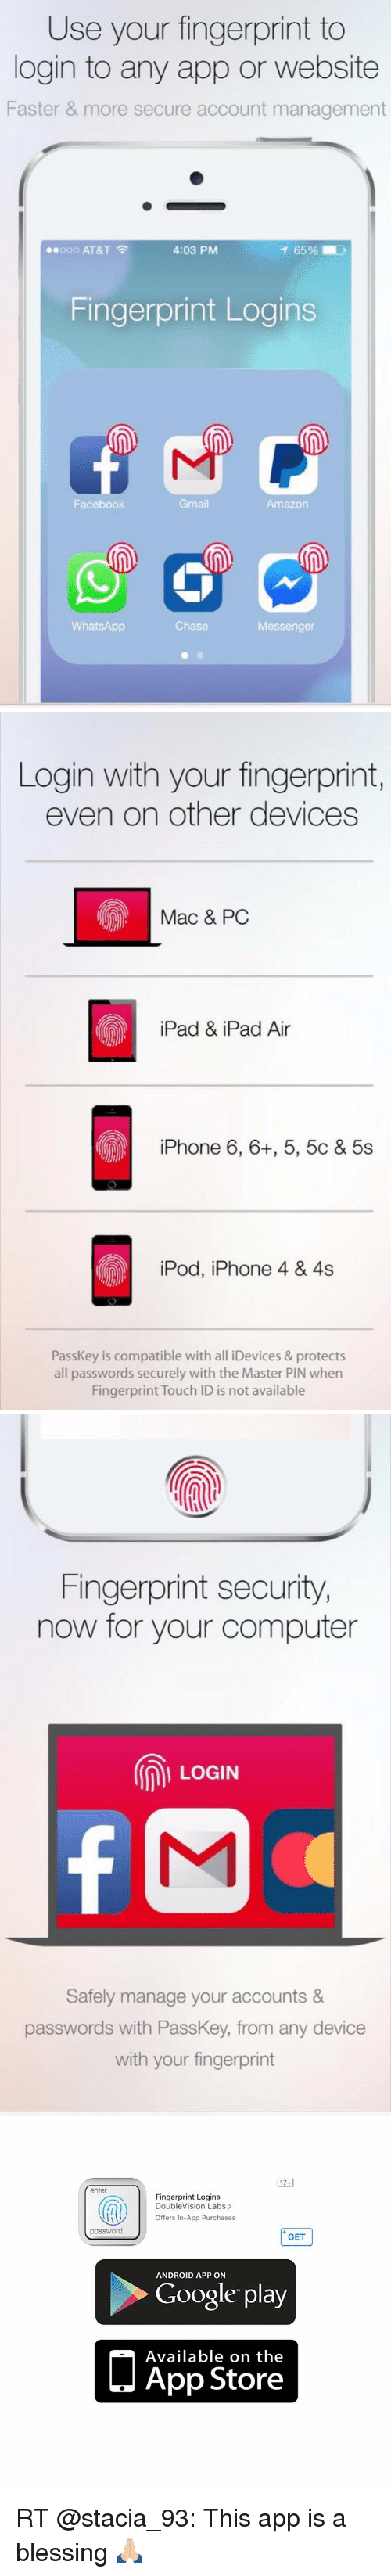 Use Your Fingerprint to Login to Any App or Website Faster